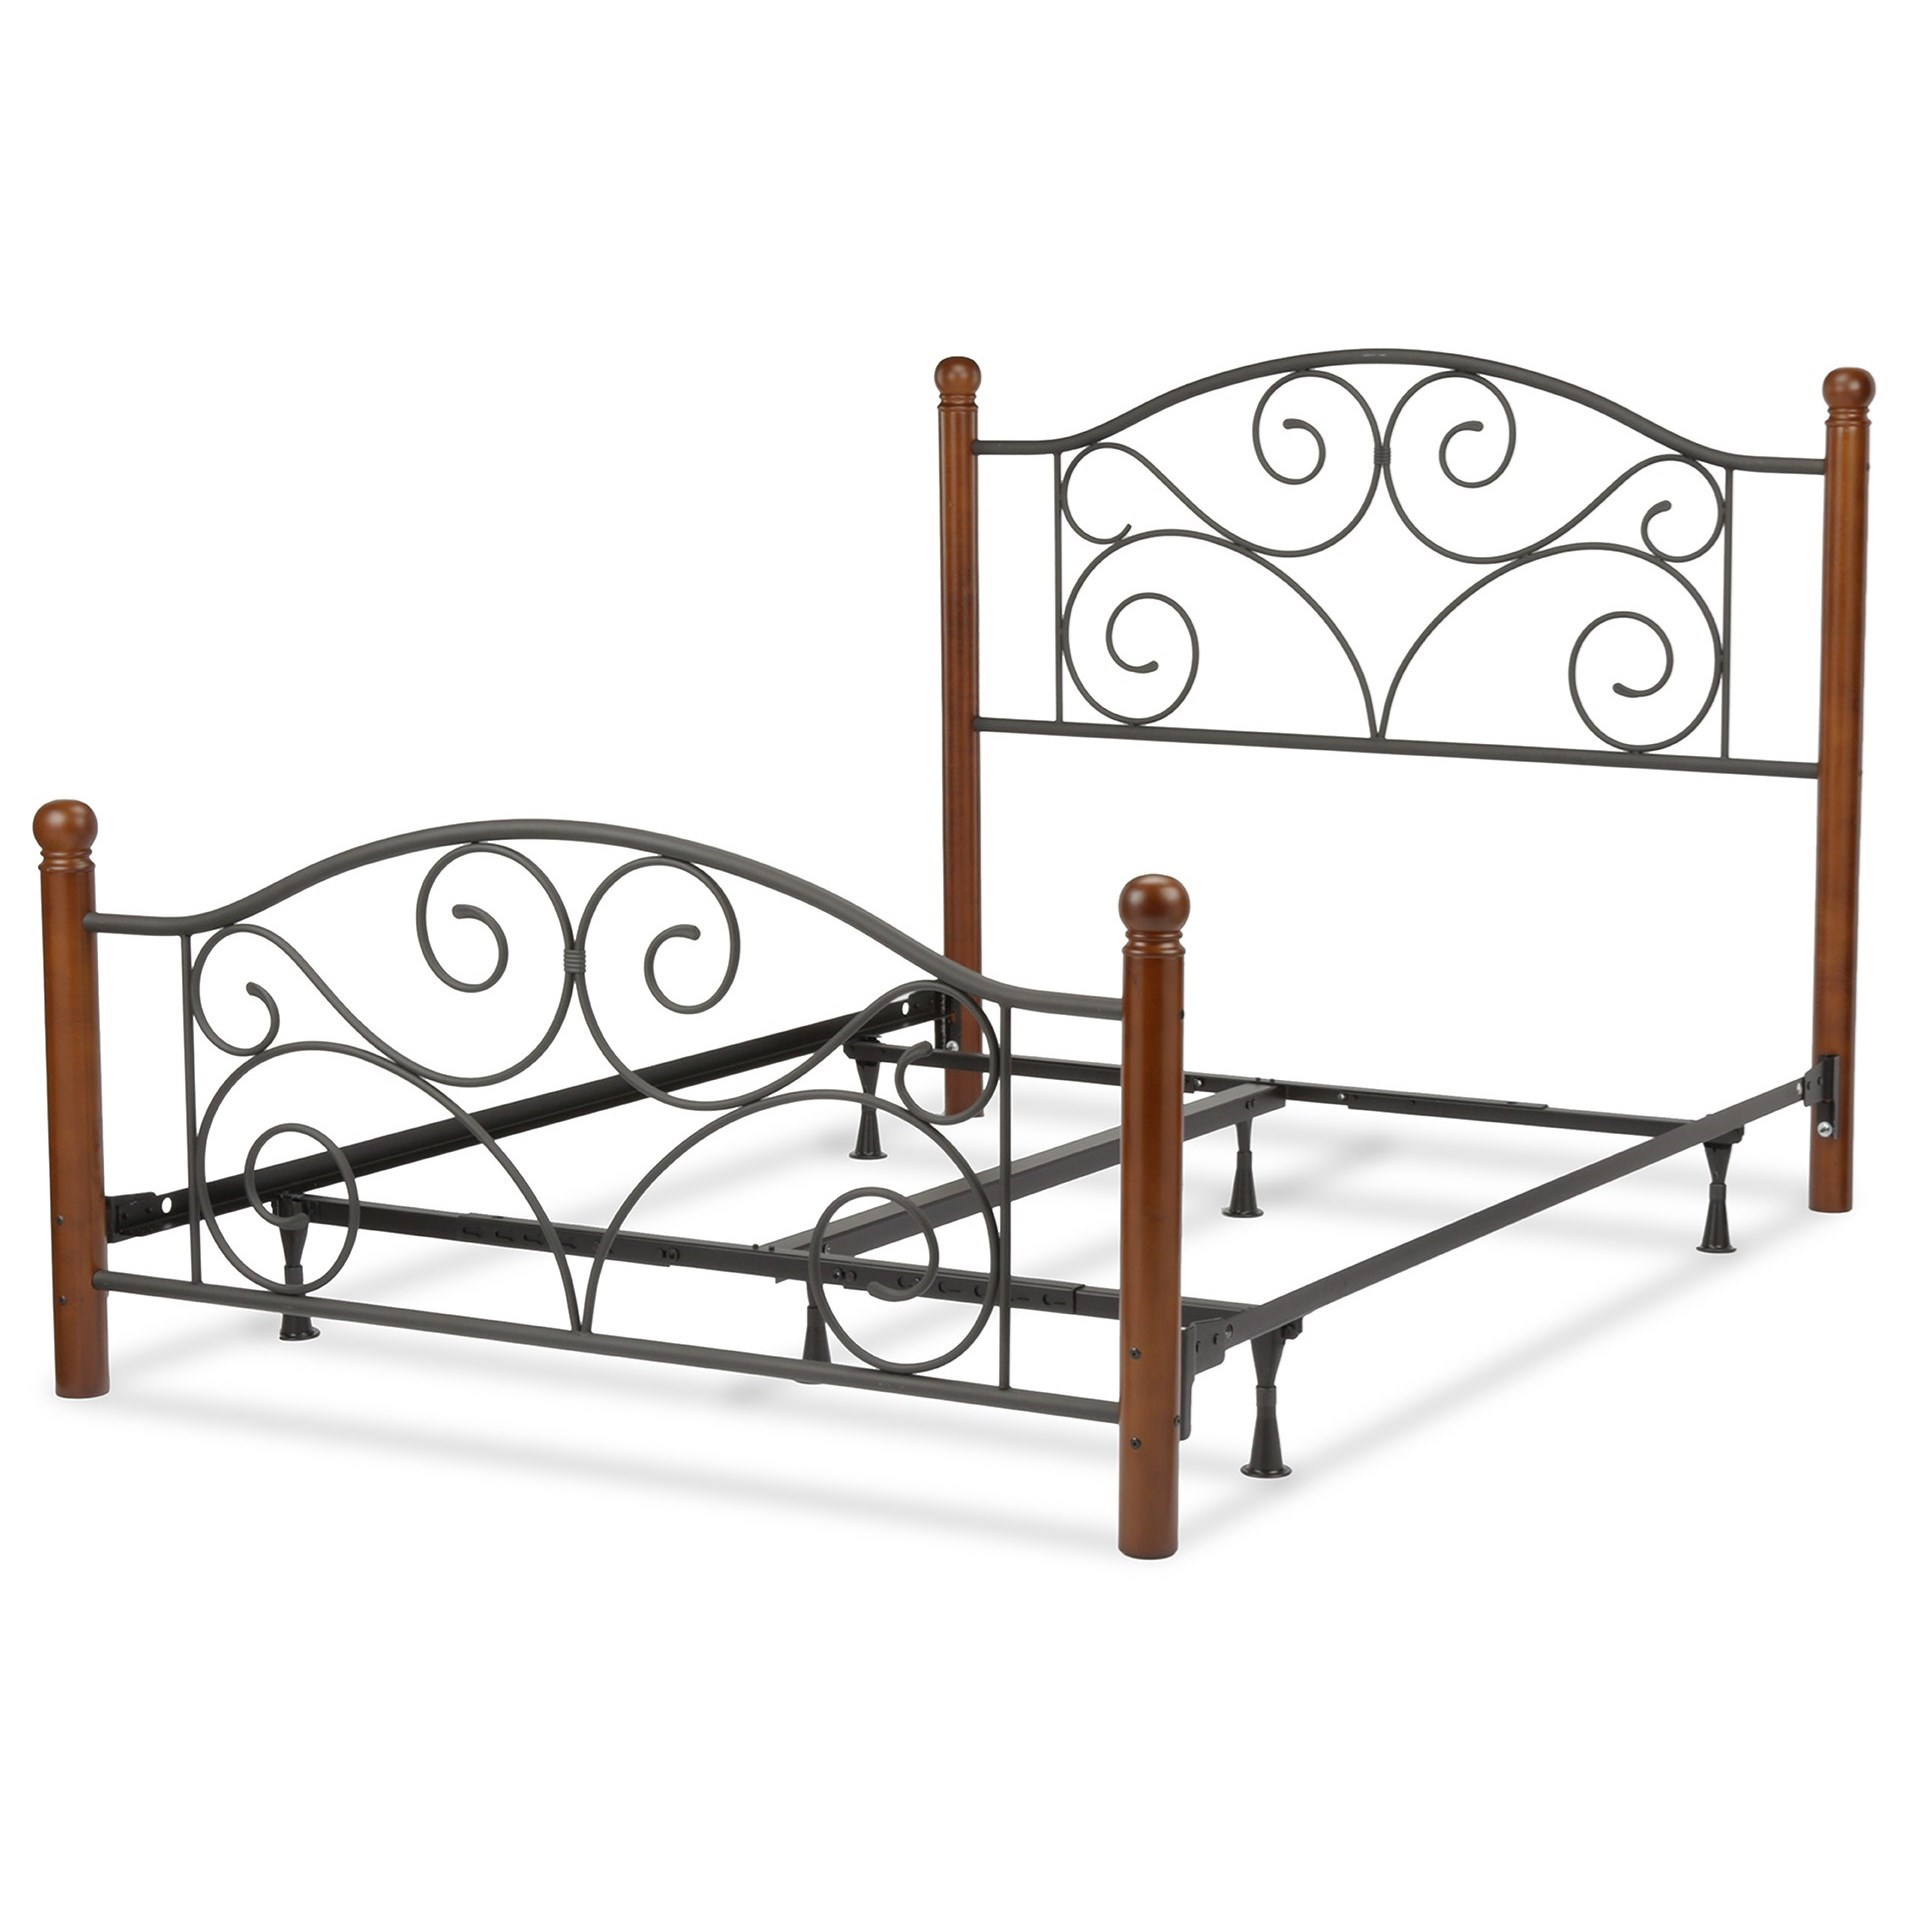 Fashion Bed Group Wood And Metal Beds B Queen Doral